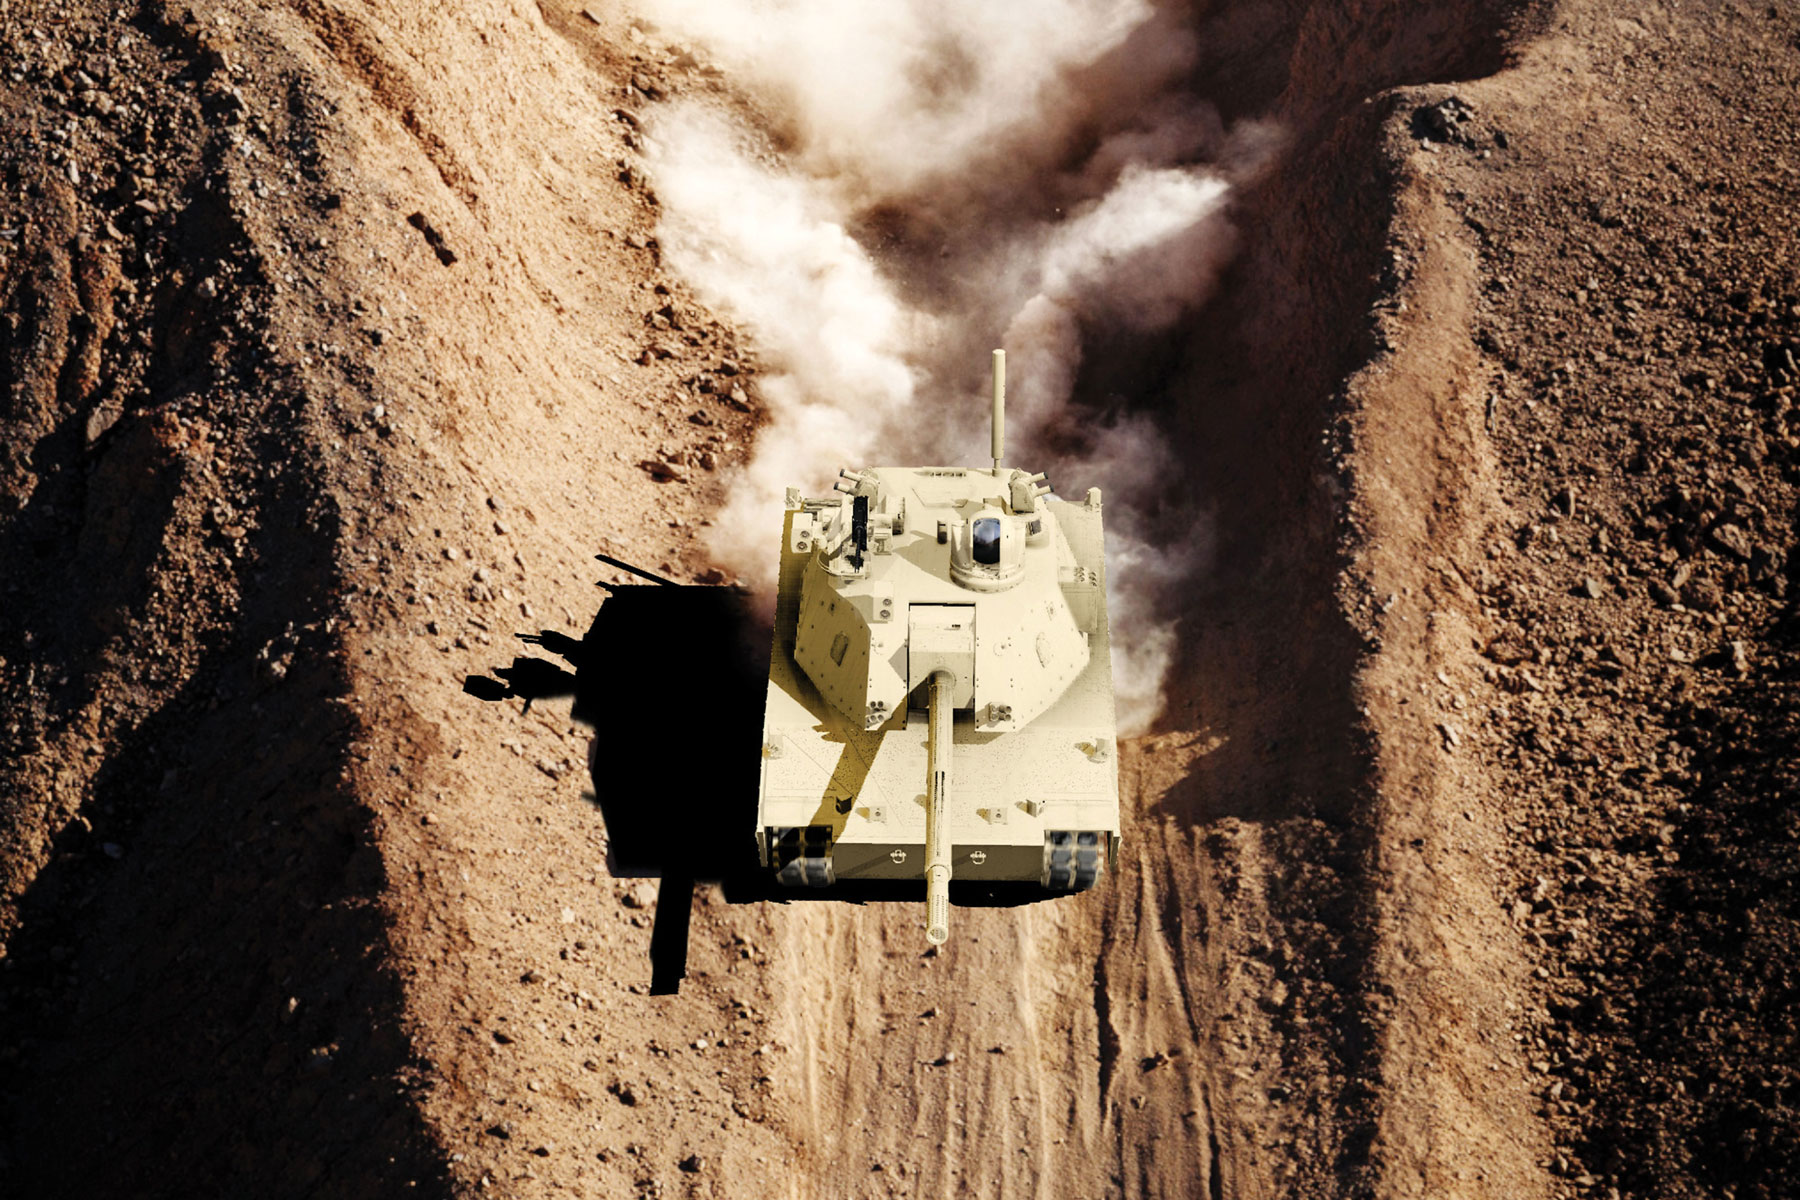 To develop and field the next generation of U.S. Army combat vehicles, the Army needs to overcome the current problem: Adding new capabilities and systems is complicated by the weight-bearing and power-generation constraints of the original platforms.